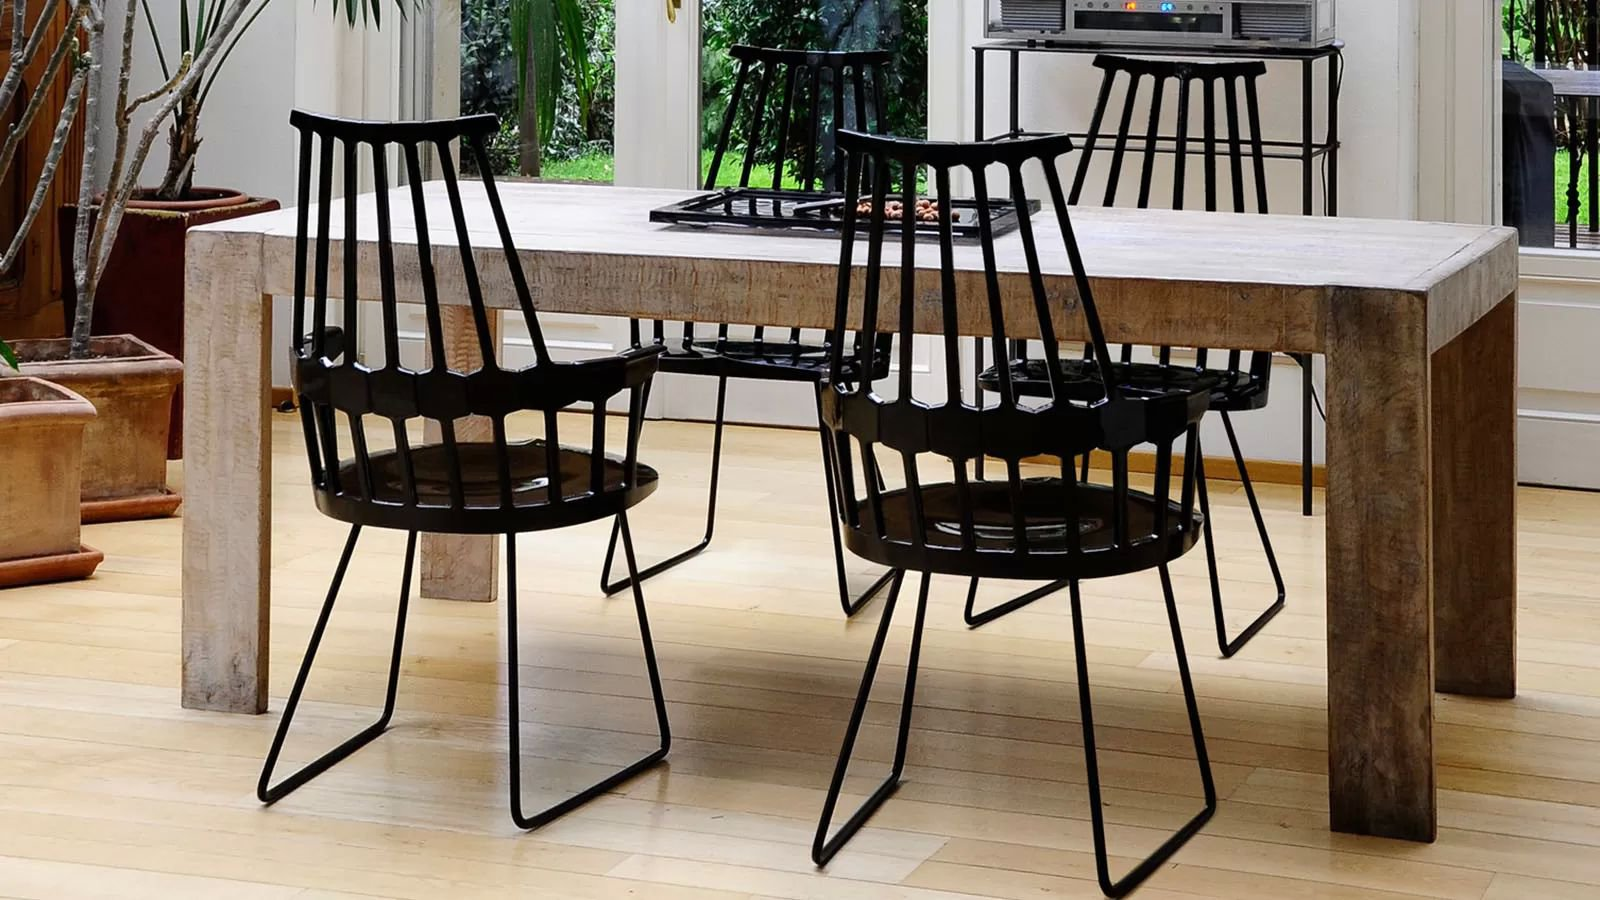 Comback Sled by Kartell & Kartell Comback Sled Plastic | Chairs | Dining Room - Contemporary ...